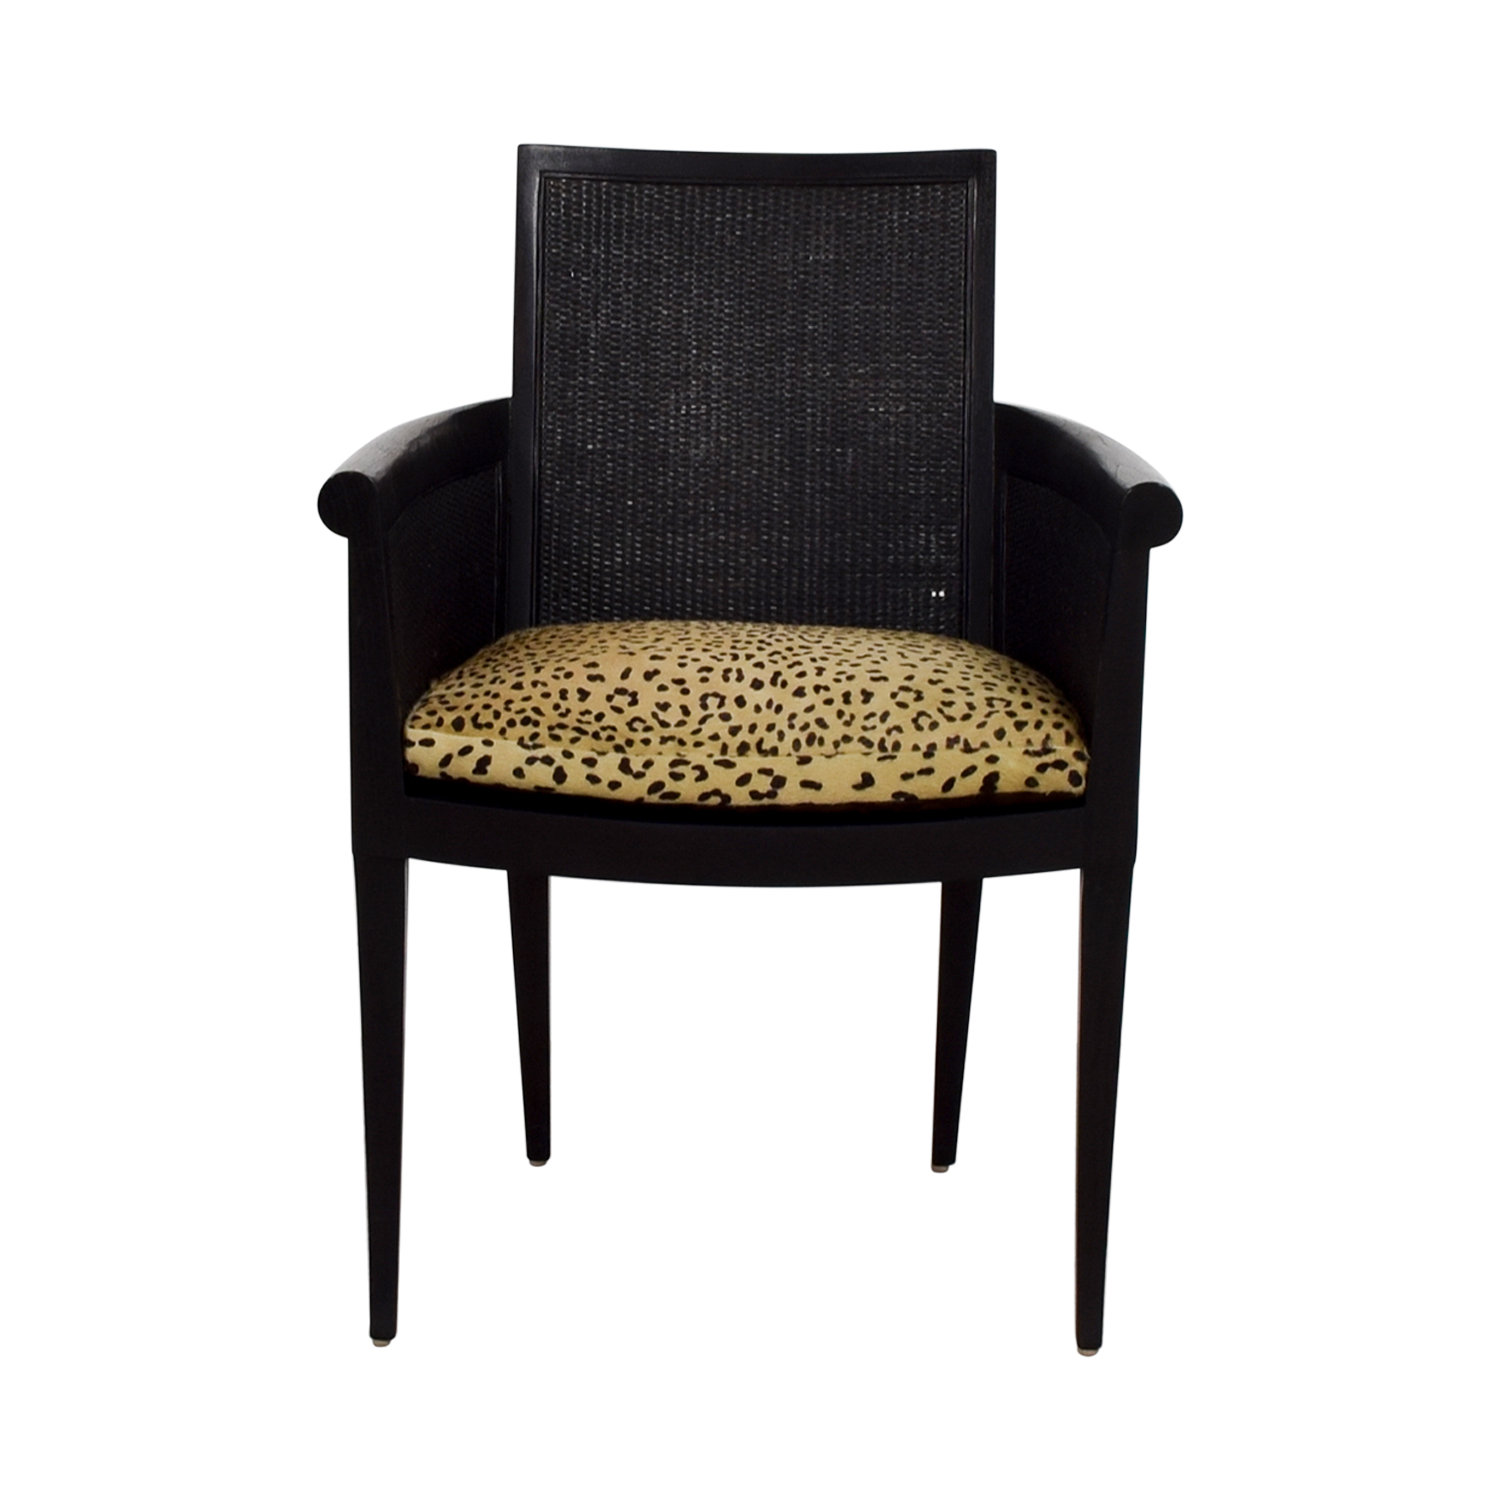 Sutherland Sutherland Cane Armchair with Pony Skin Leopard Cushion dimensions